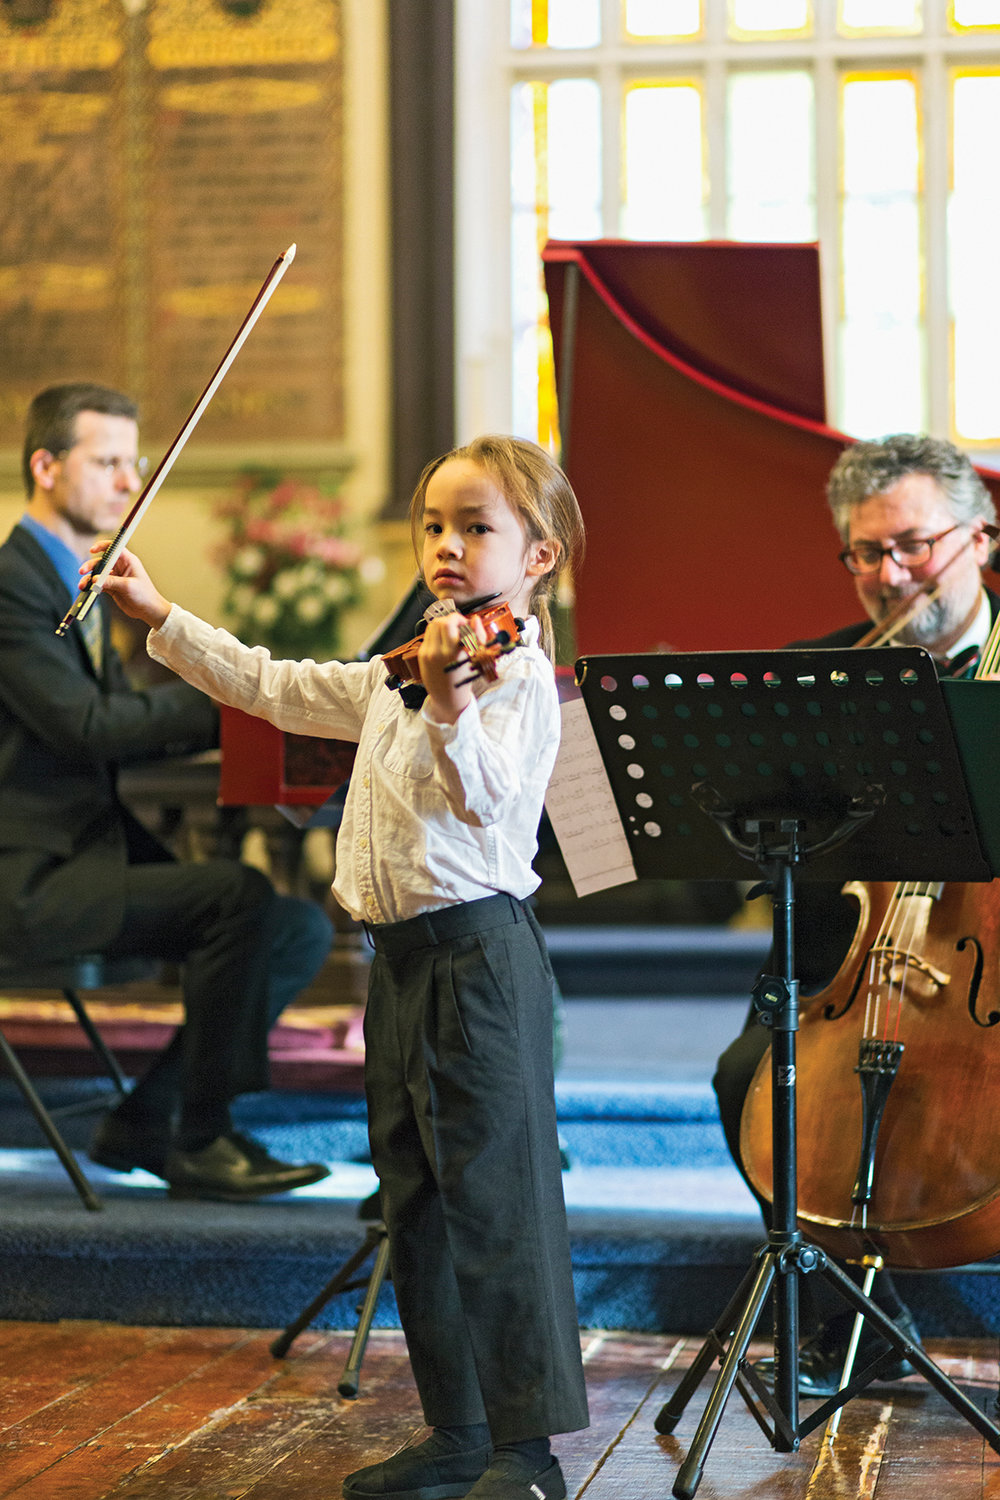 Eight-year-old violinist Sora Sator-Mound will be part of the Friday classical music concert at St. John's Anglican Church.